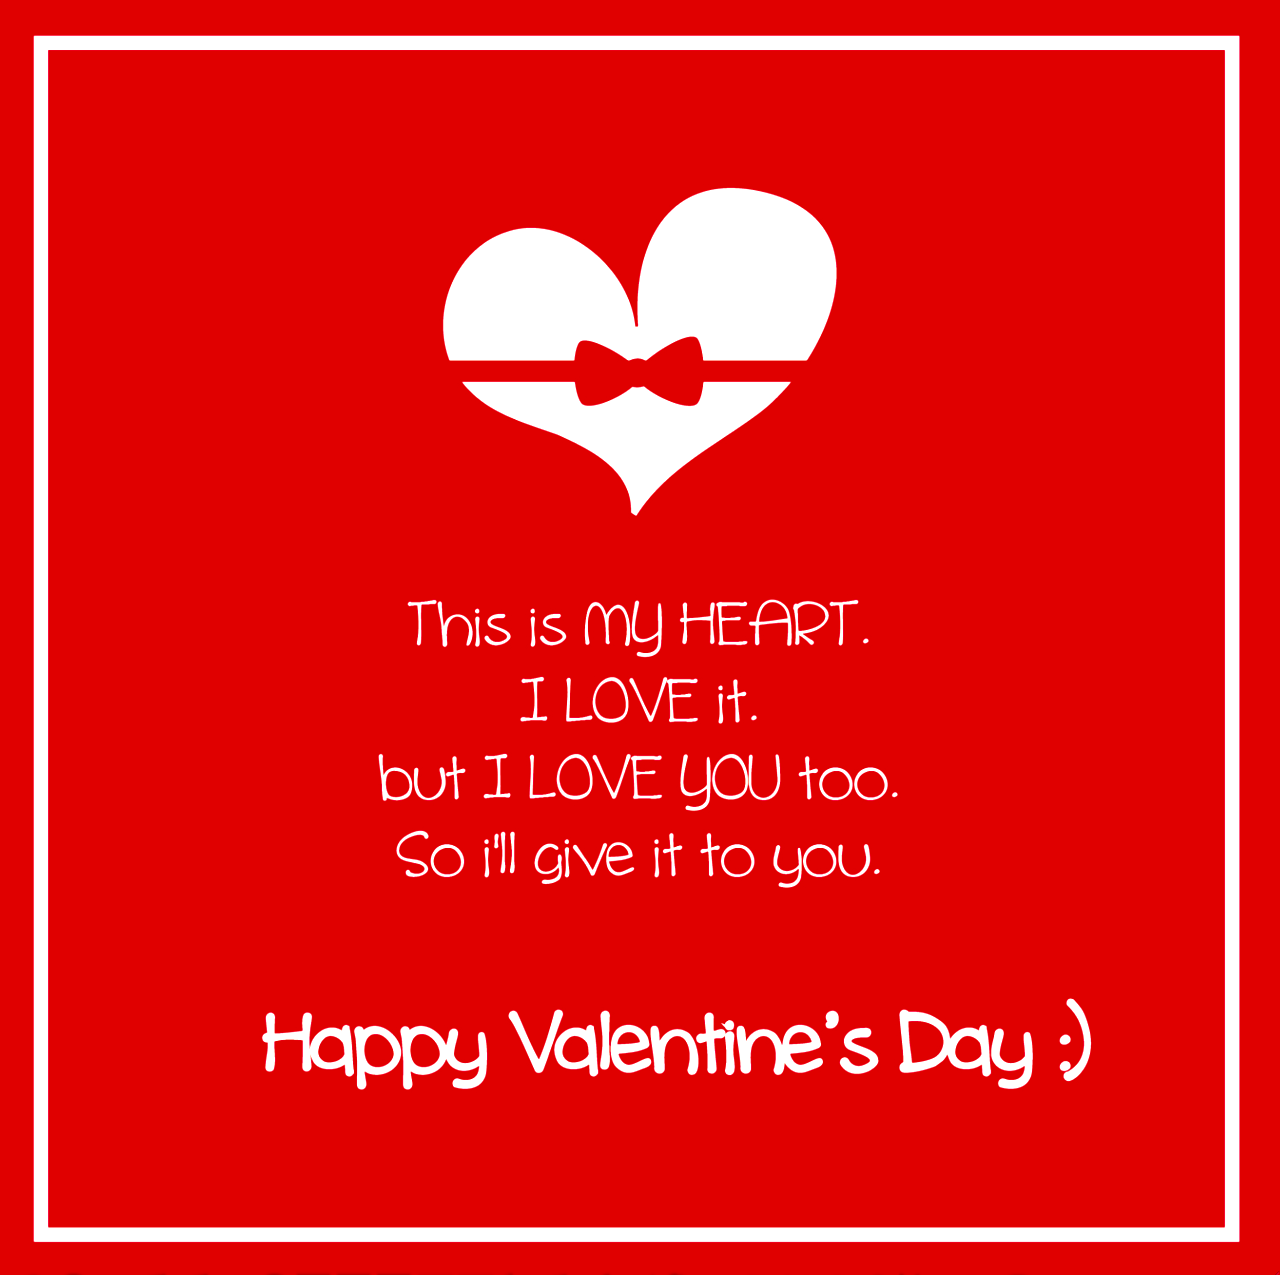 Happy Valentines Day Images To Share On Valentines Day   Romance   Nairaland